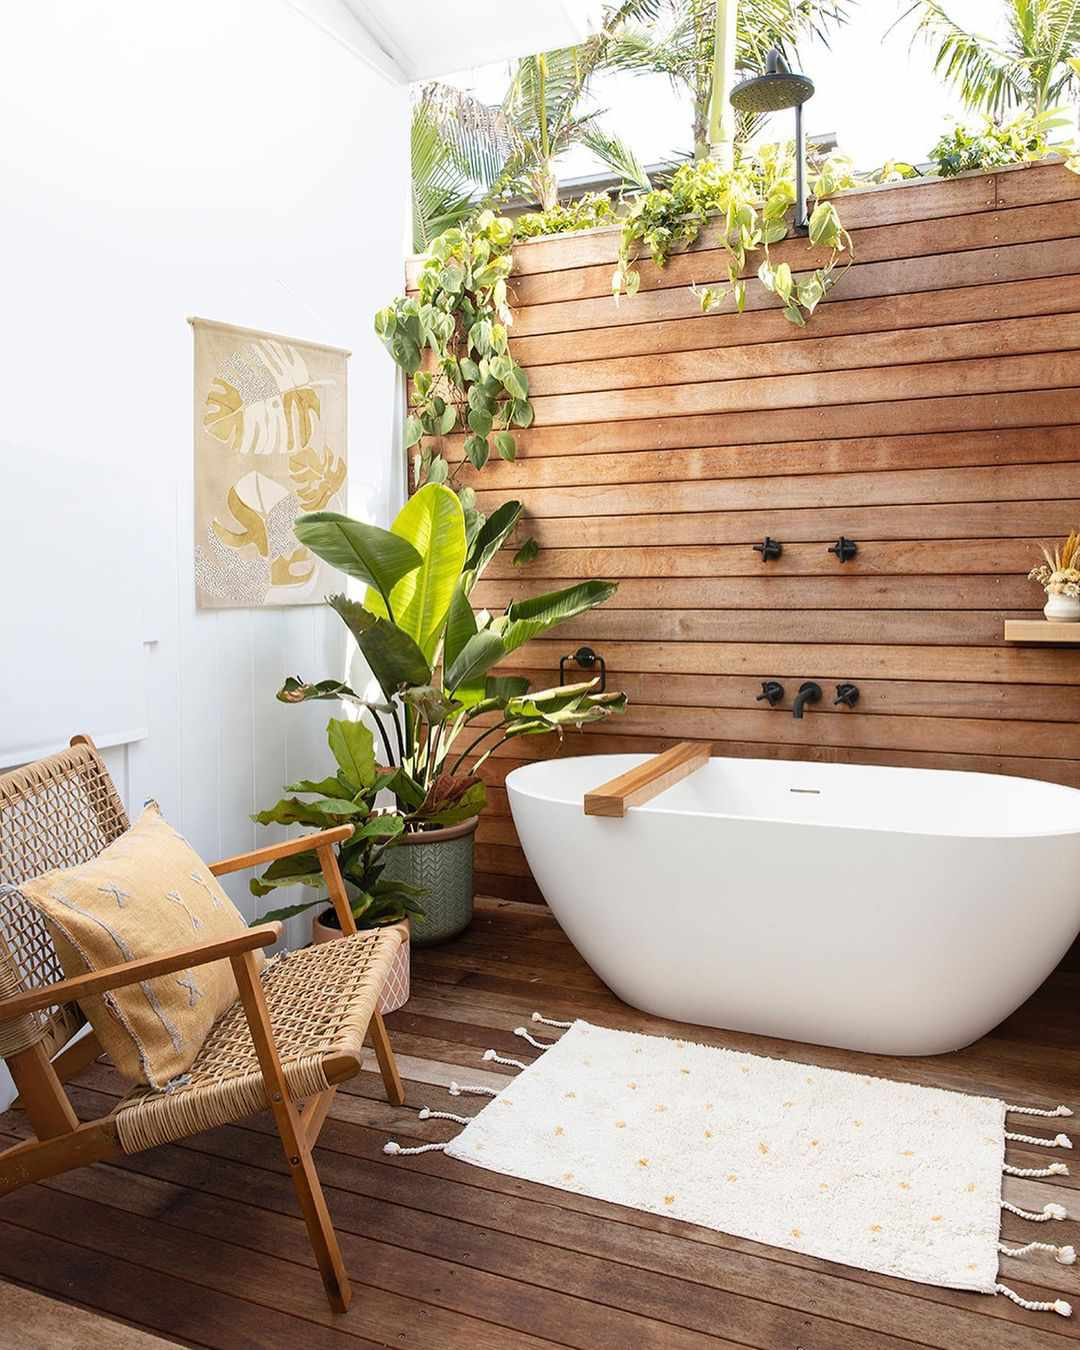 Standing tub with wood behind it